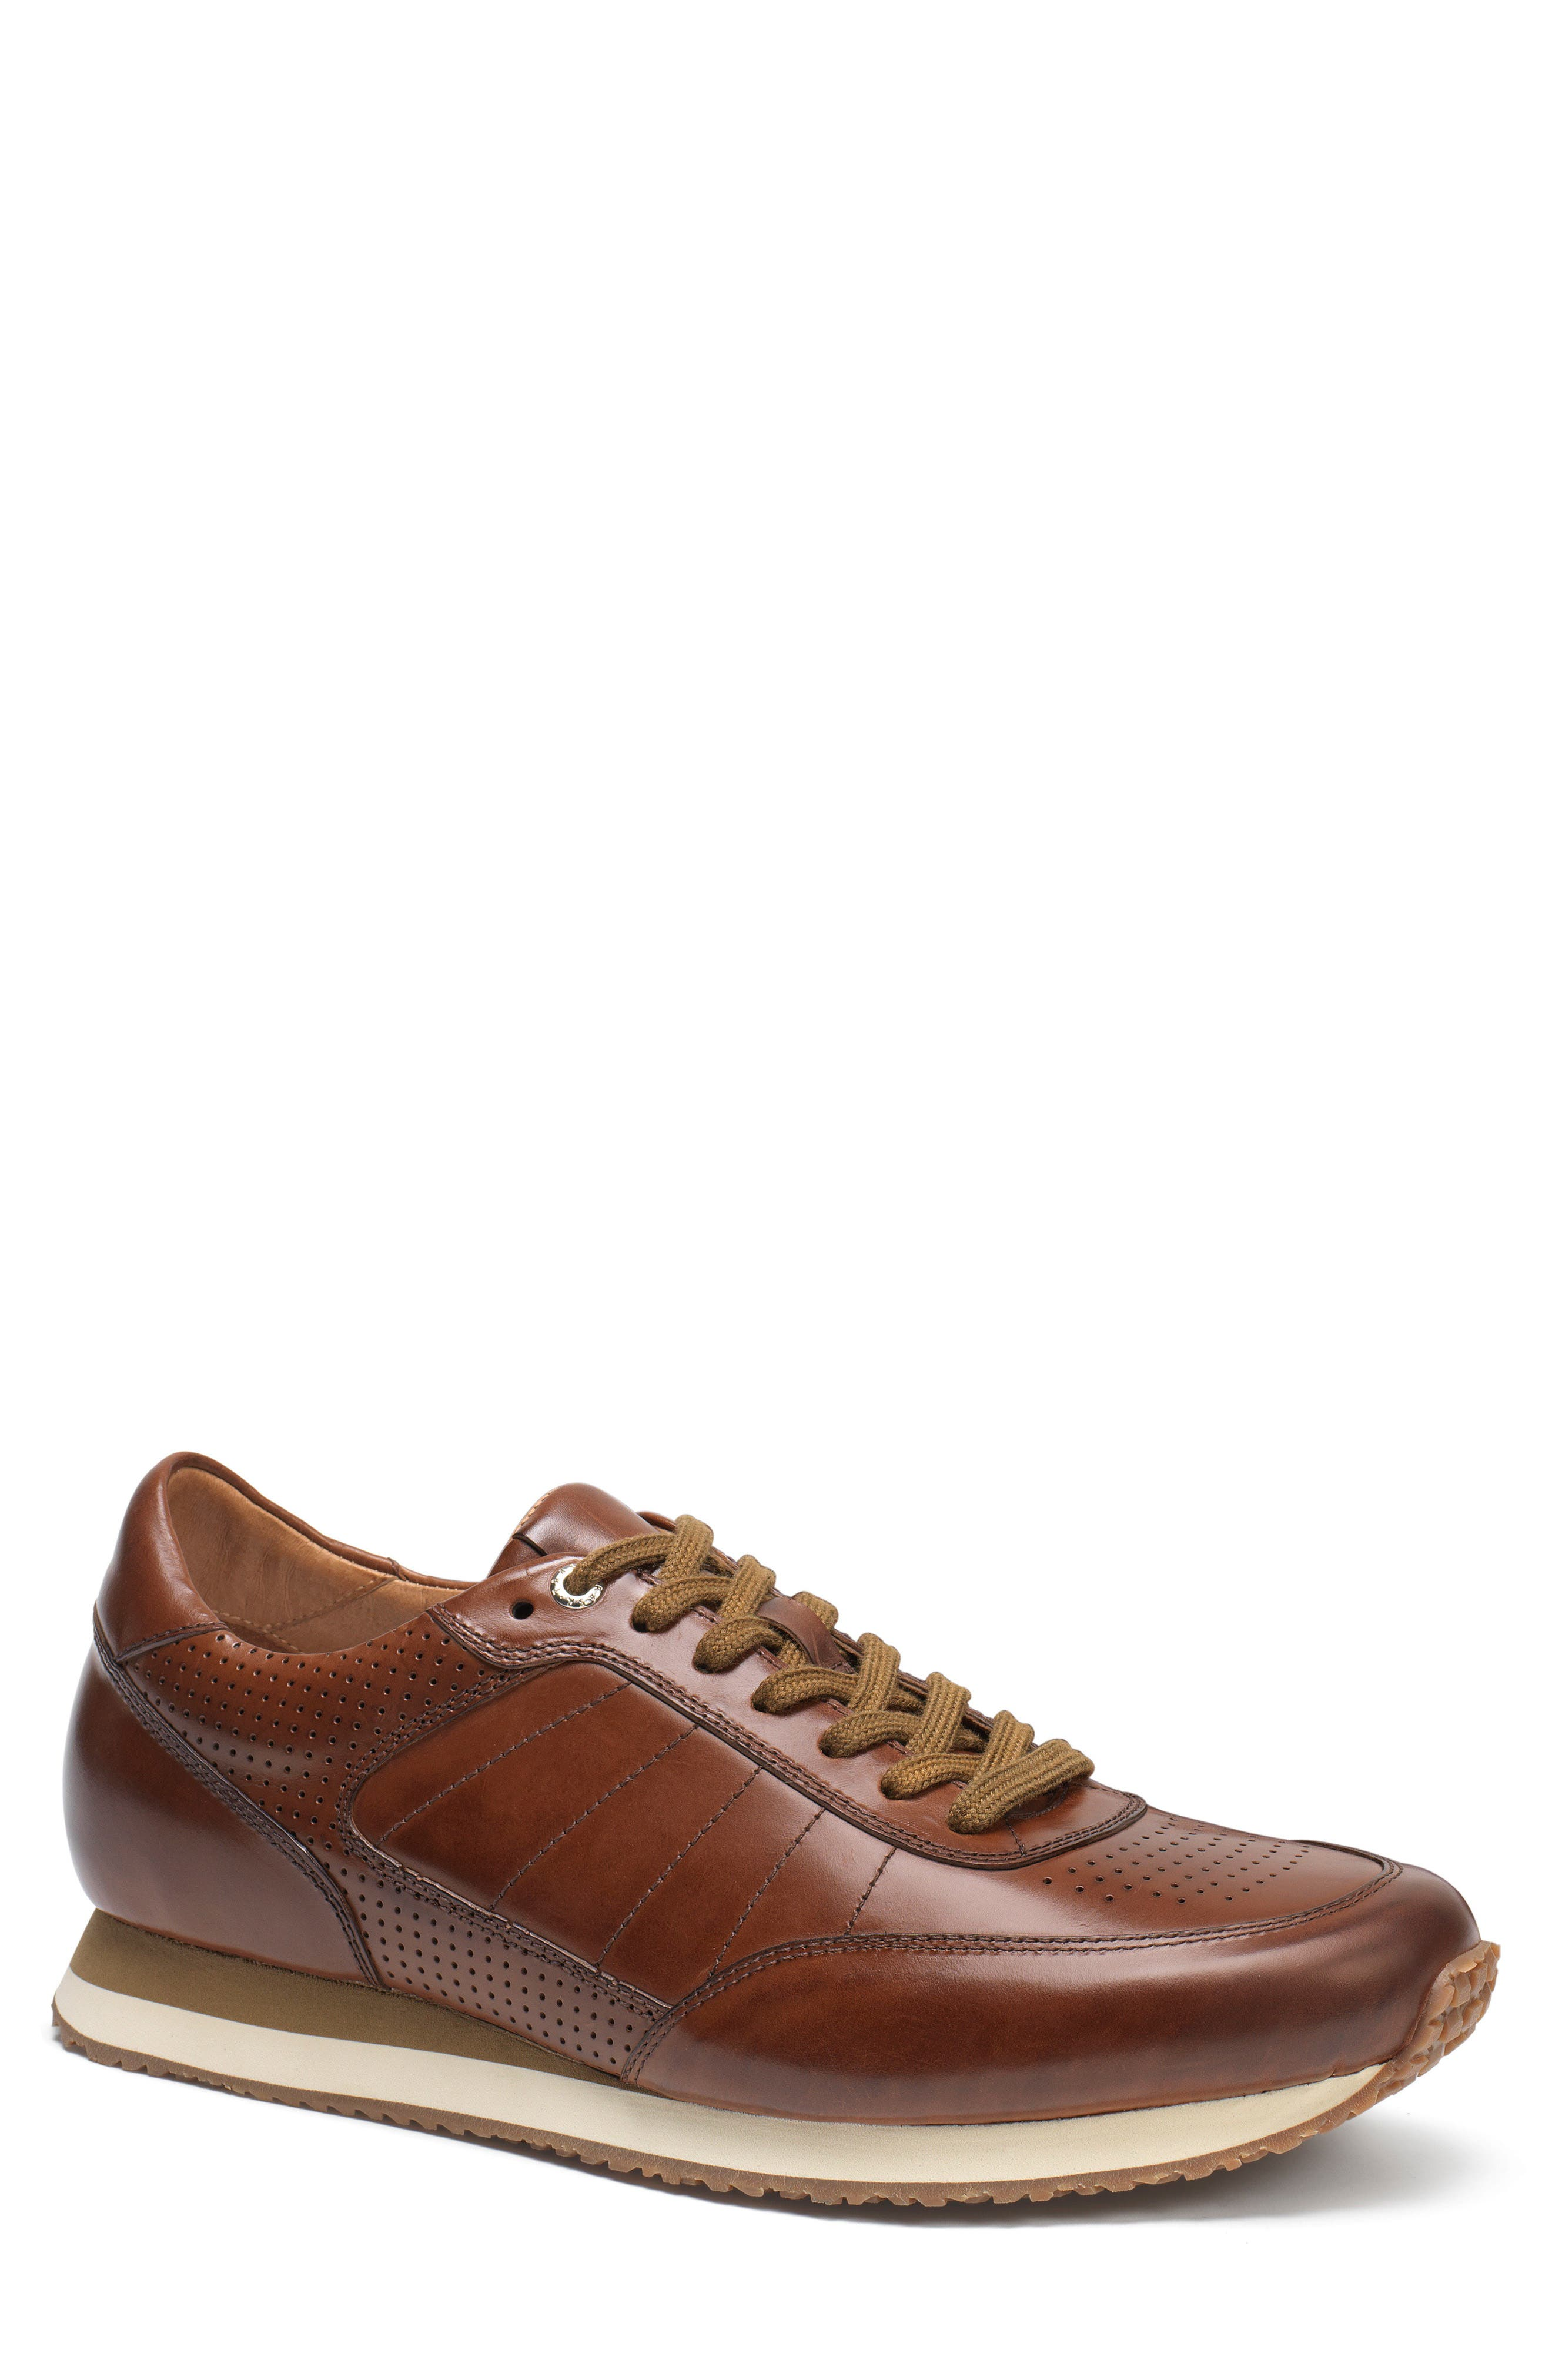 TRASK, Aiden Sneaker, Main thumbnail 1, color, BROWN LEATHER